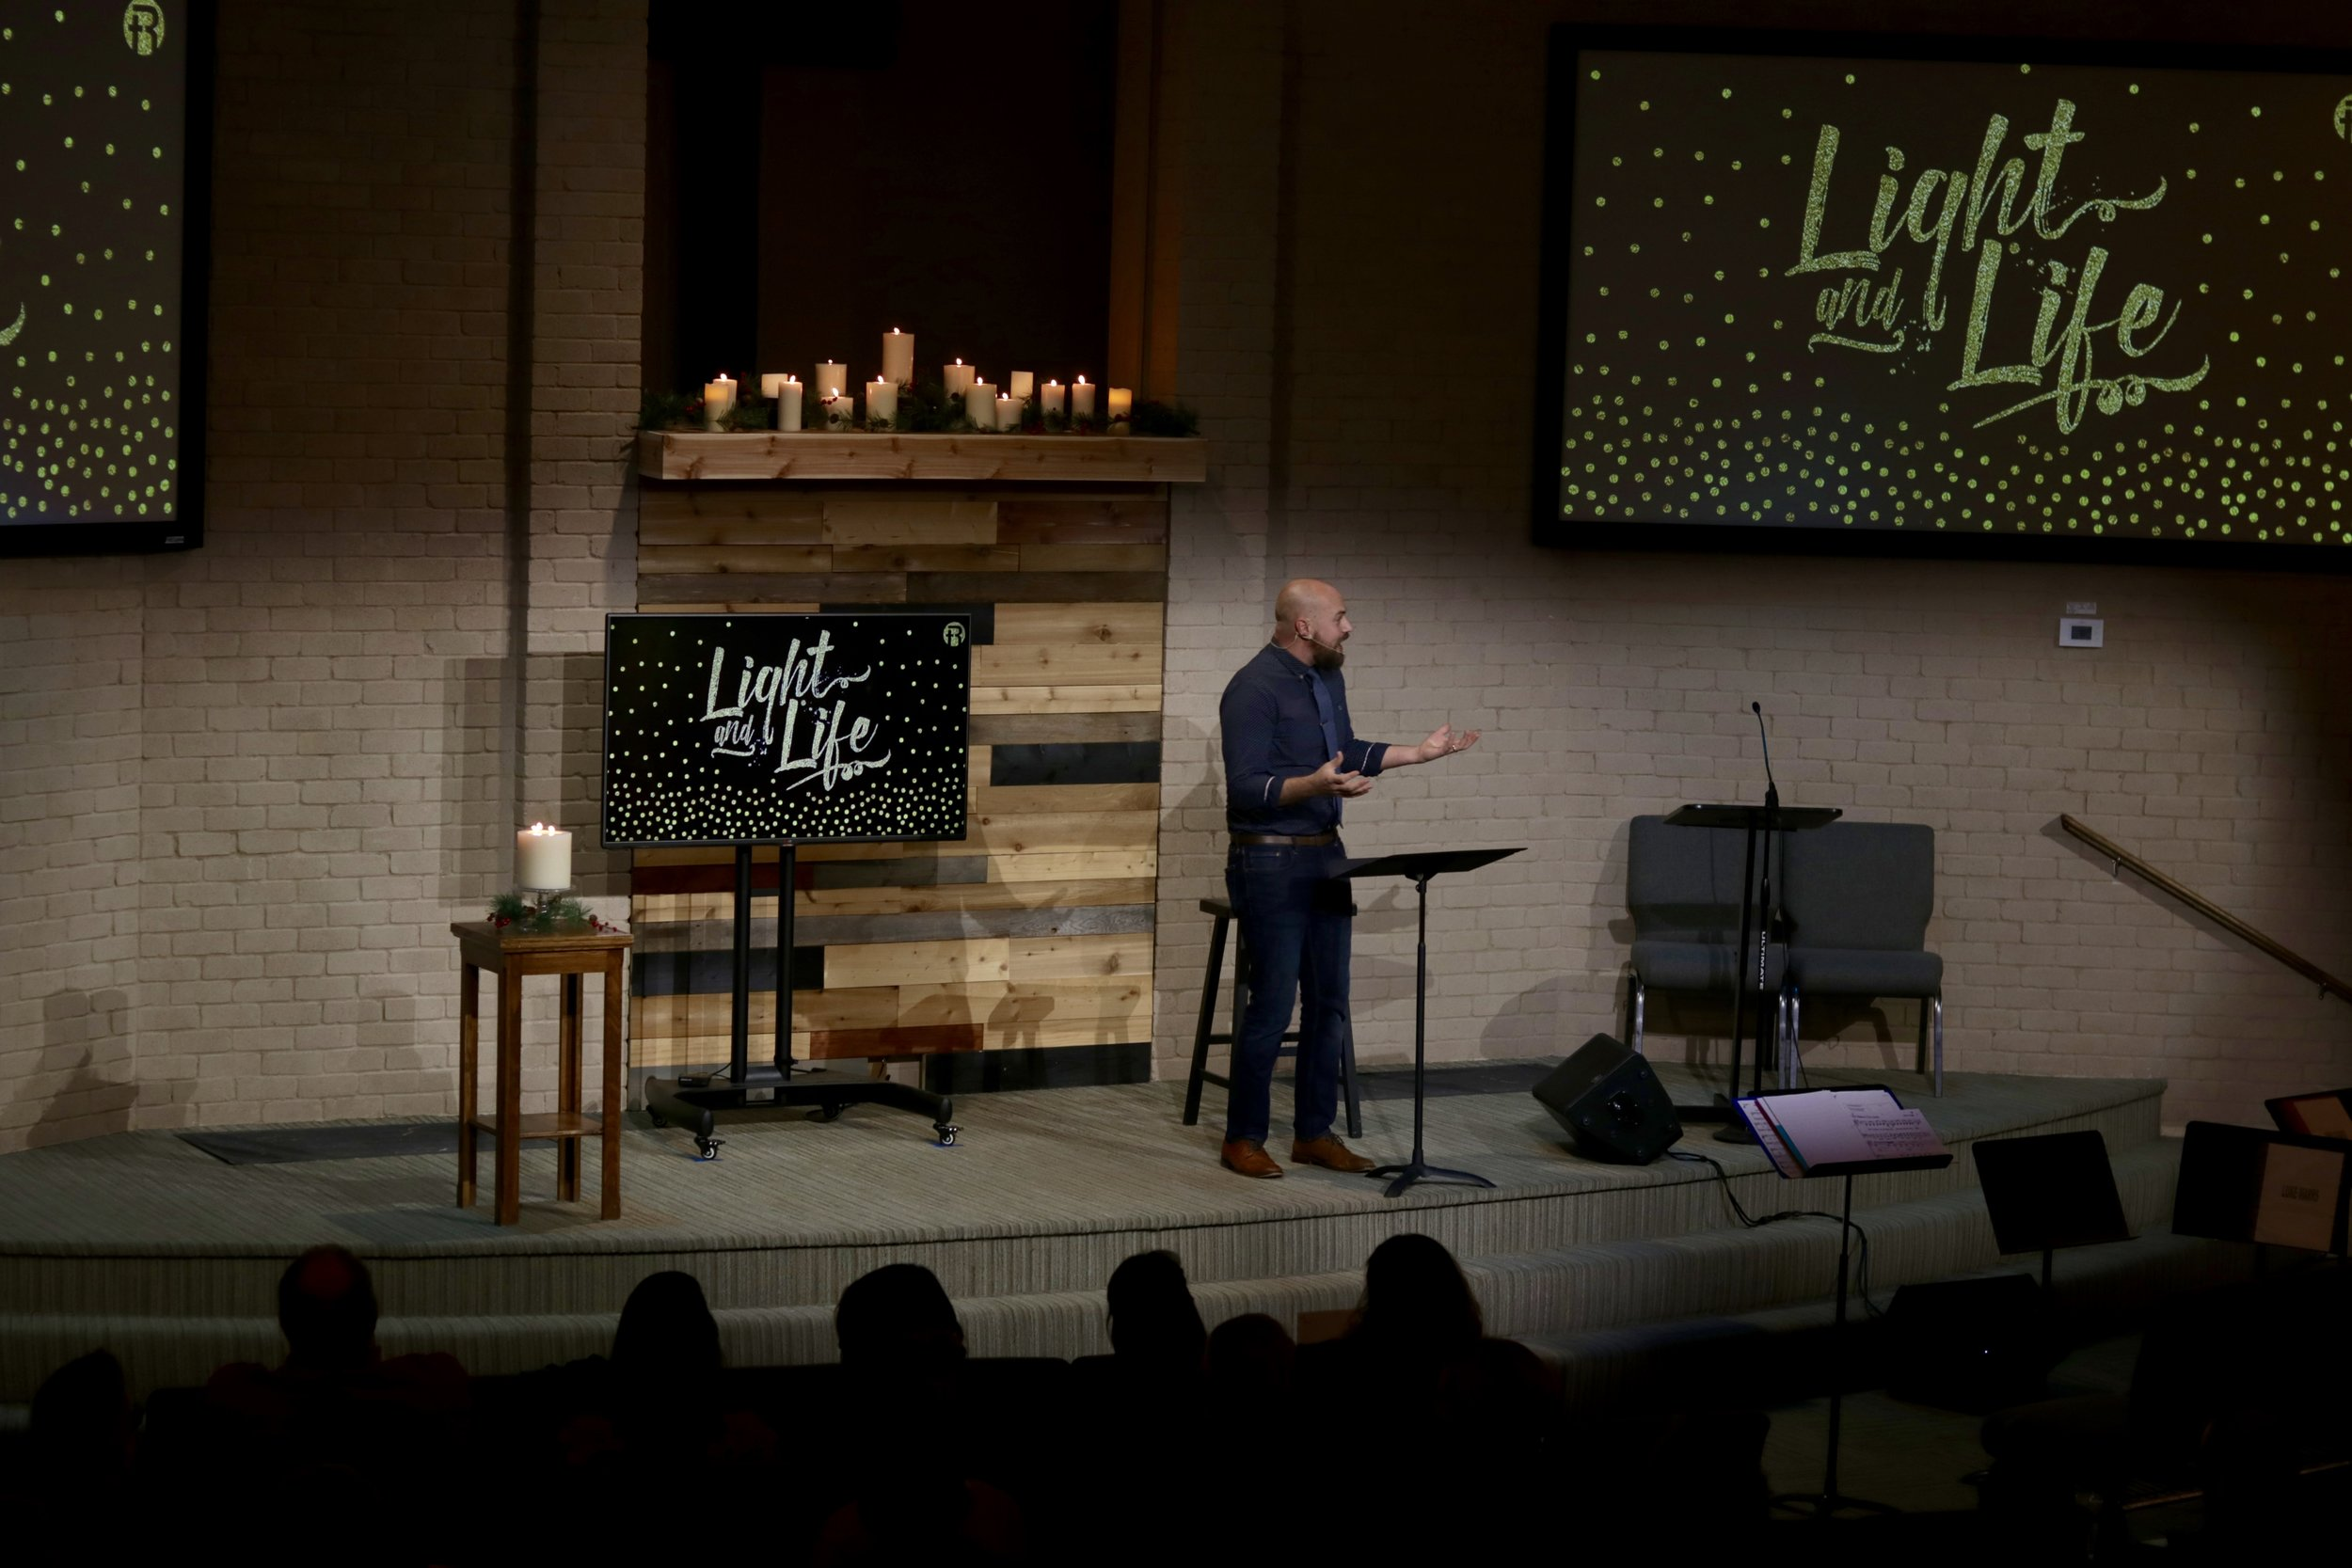 From last year's Christmas worship gathering…